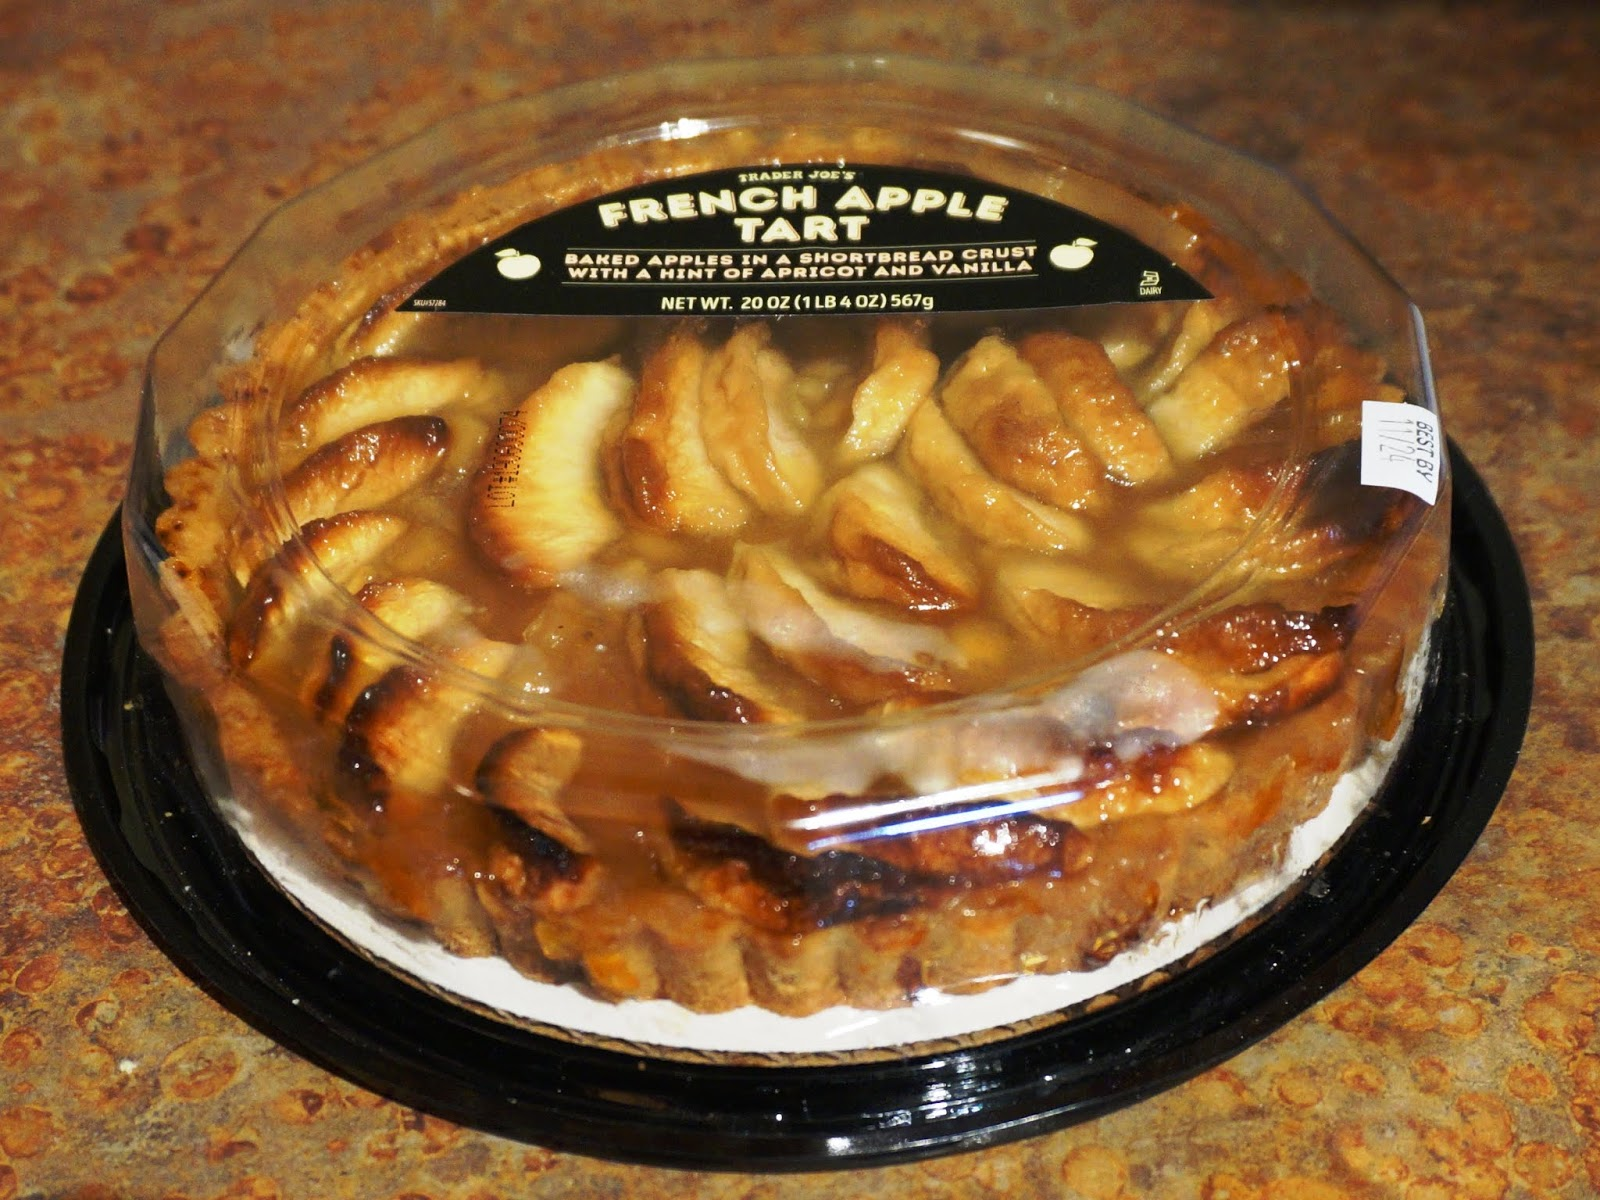 Exploring Trader Joe S Trader Joe S French Apple Tart